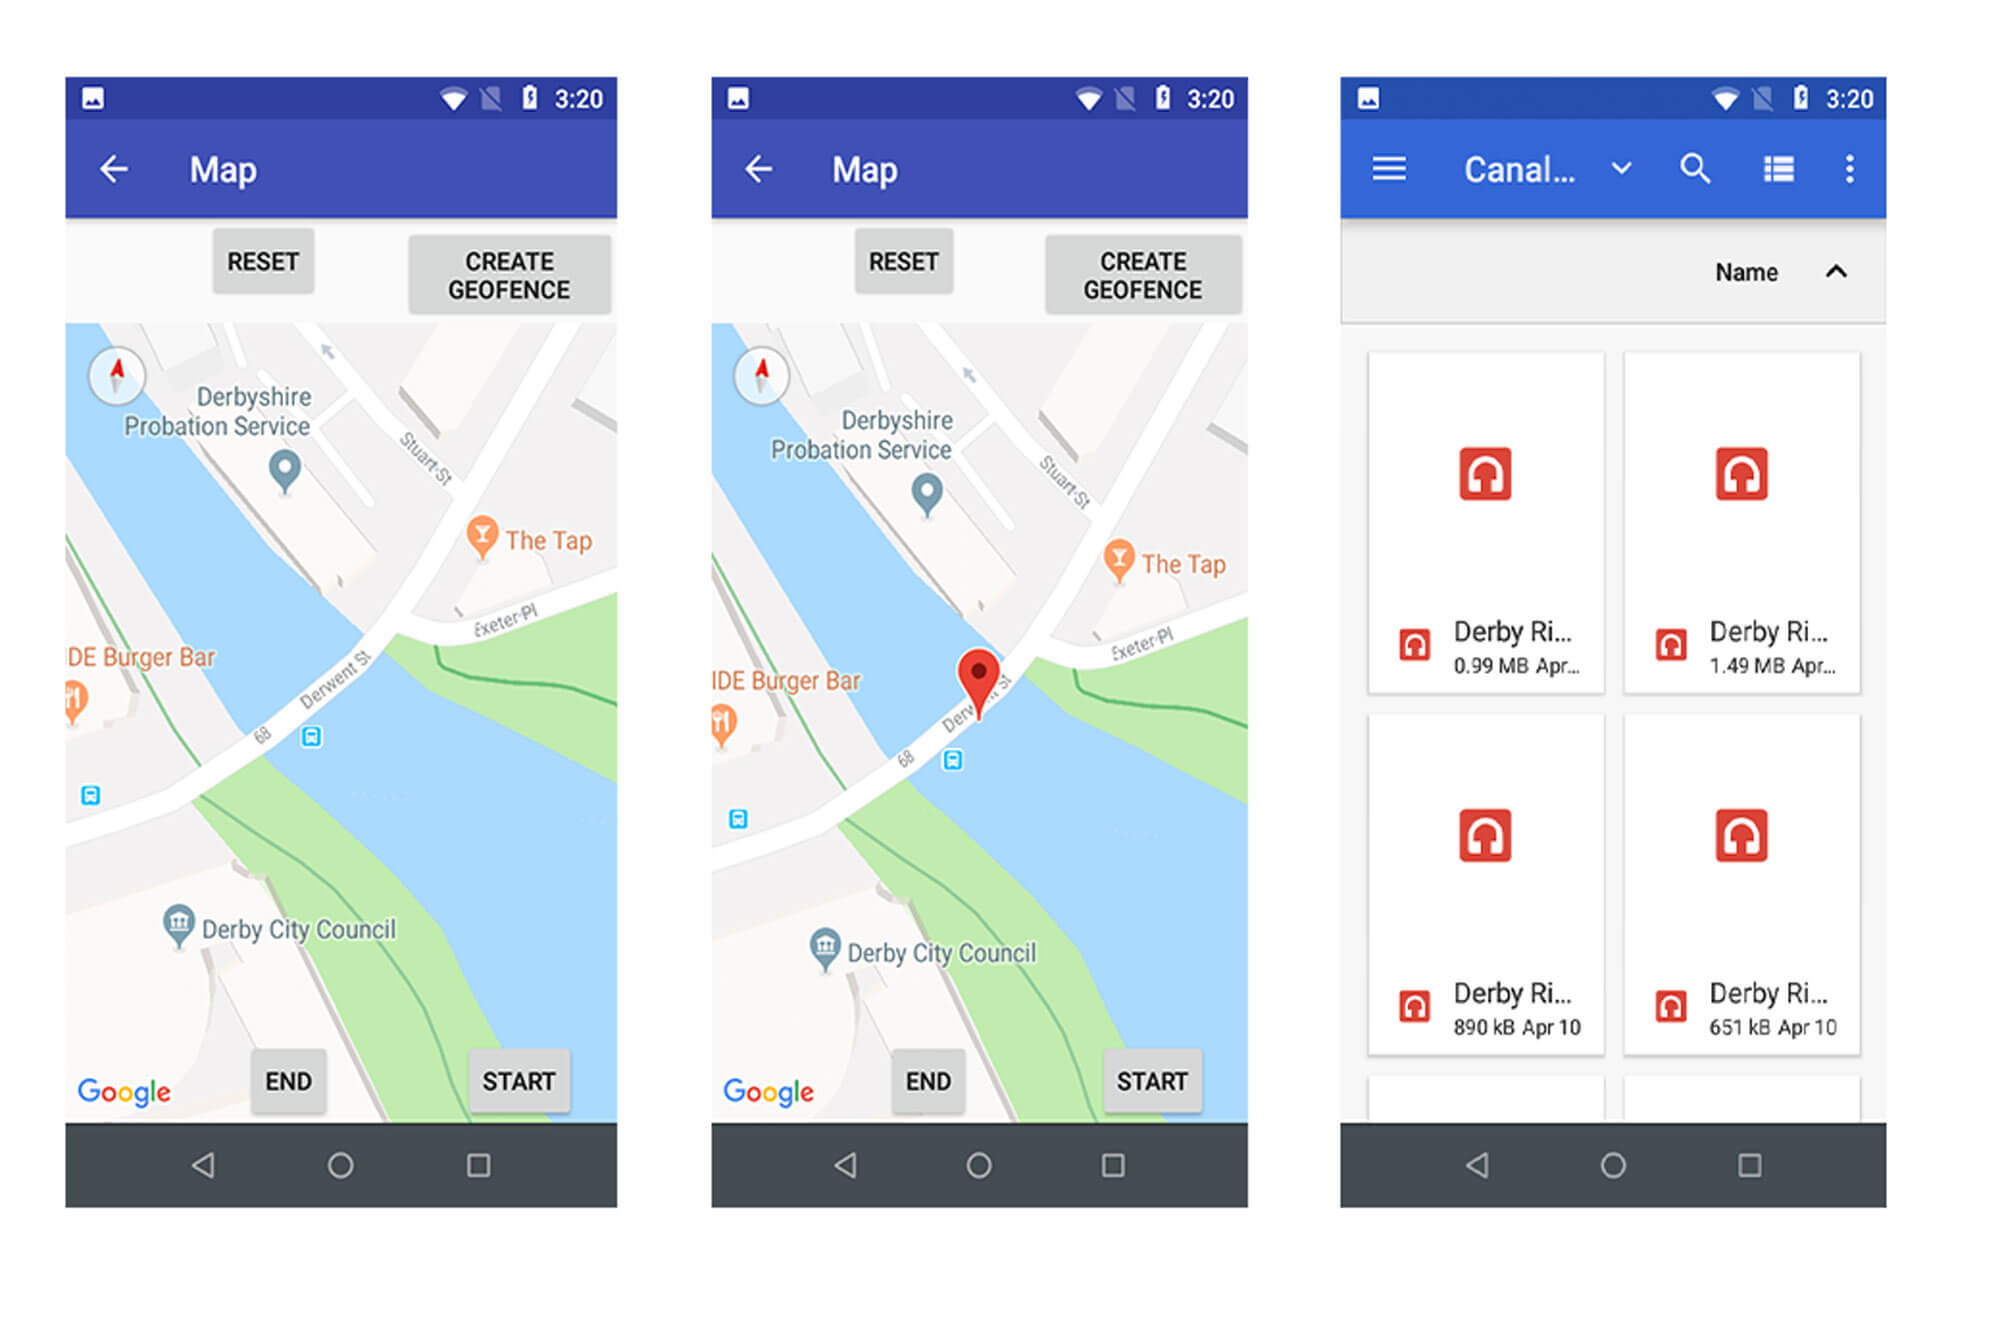 A selection of screen grab images from a mobile phone app